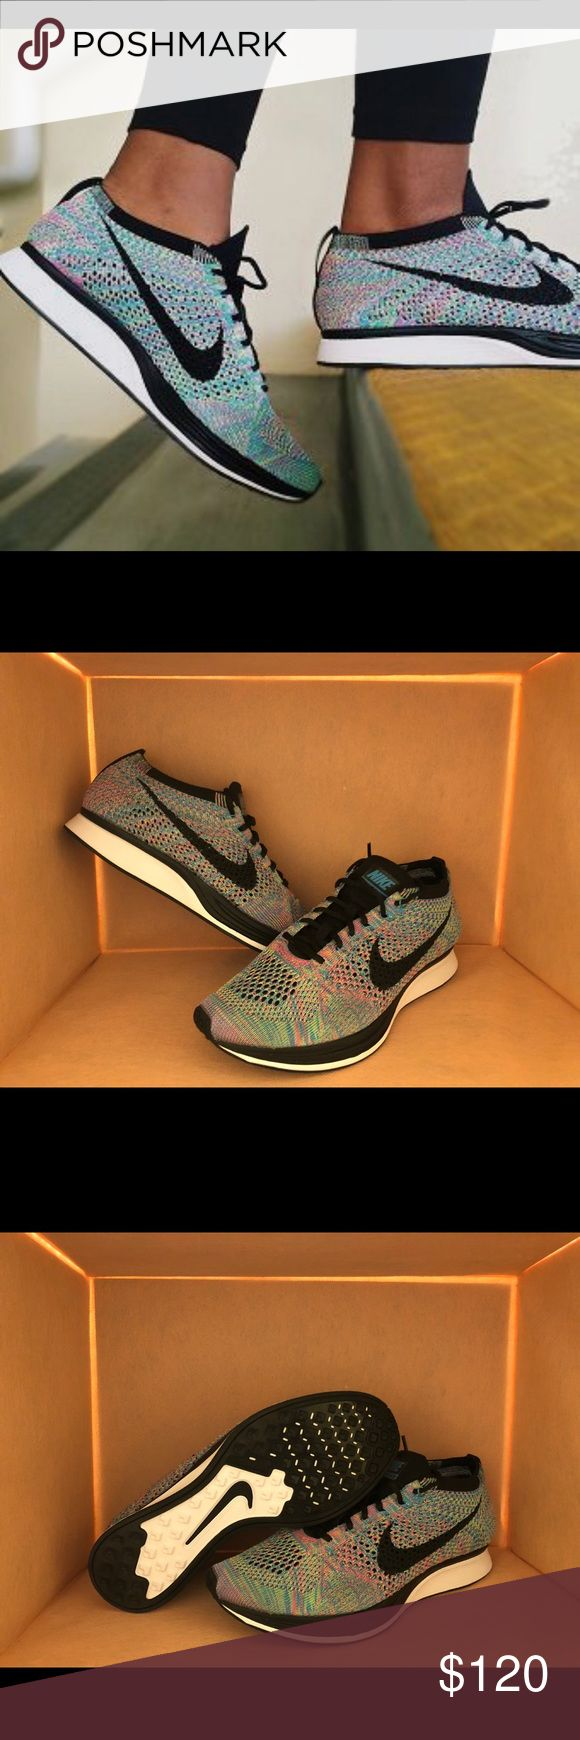 Flyknit Racer Multicolor NWT. In box - no lid. Flyknit wraps your foot for total comfort Bootie-style construction lets you slip in and out quickly Nike Zoom Air cushioning is lightweight and responsive Rubber outsole for durability. Nike Shoes Sneakers